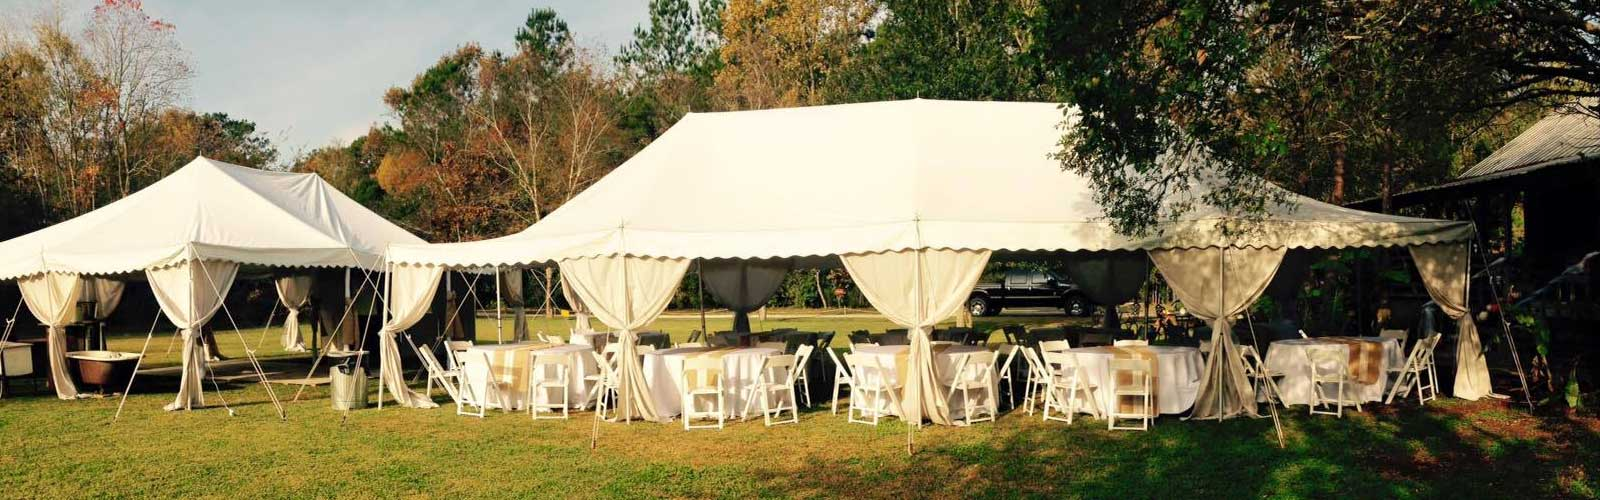 Tent rentals in Eunice / Opelousas Louisiana